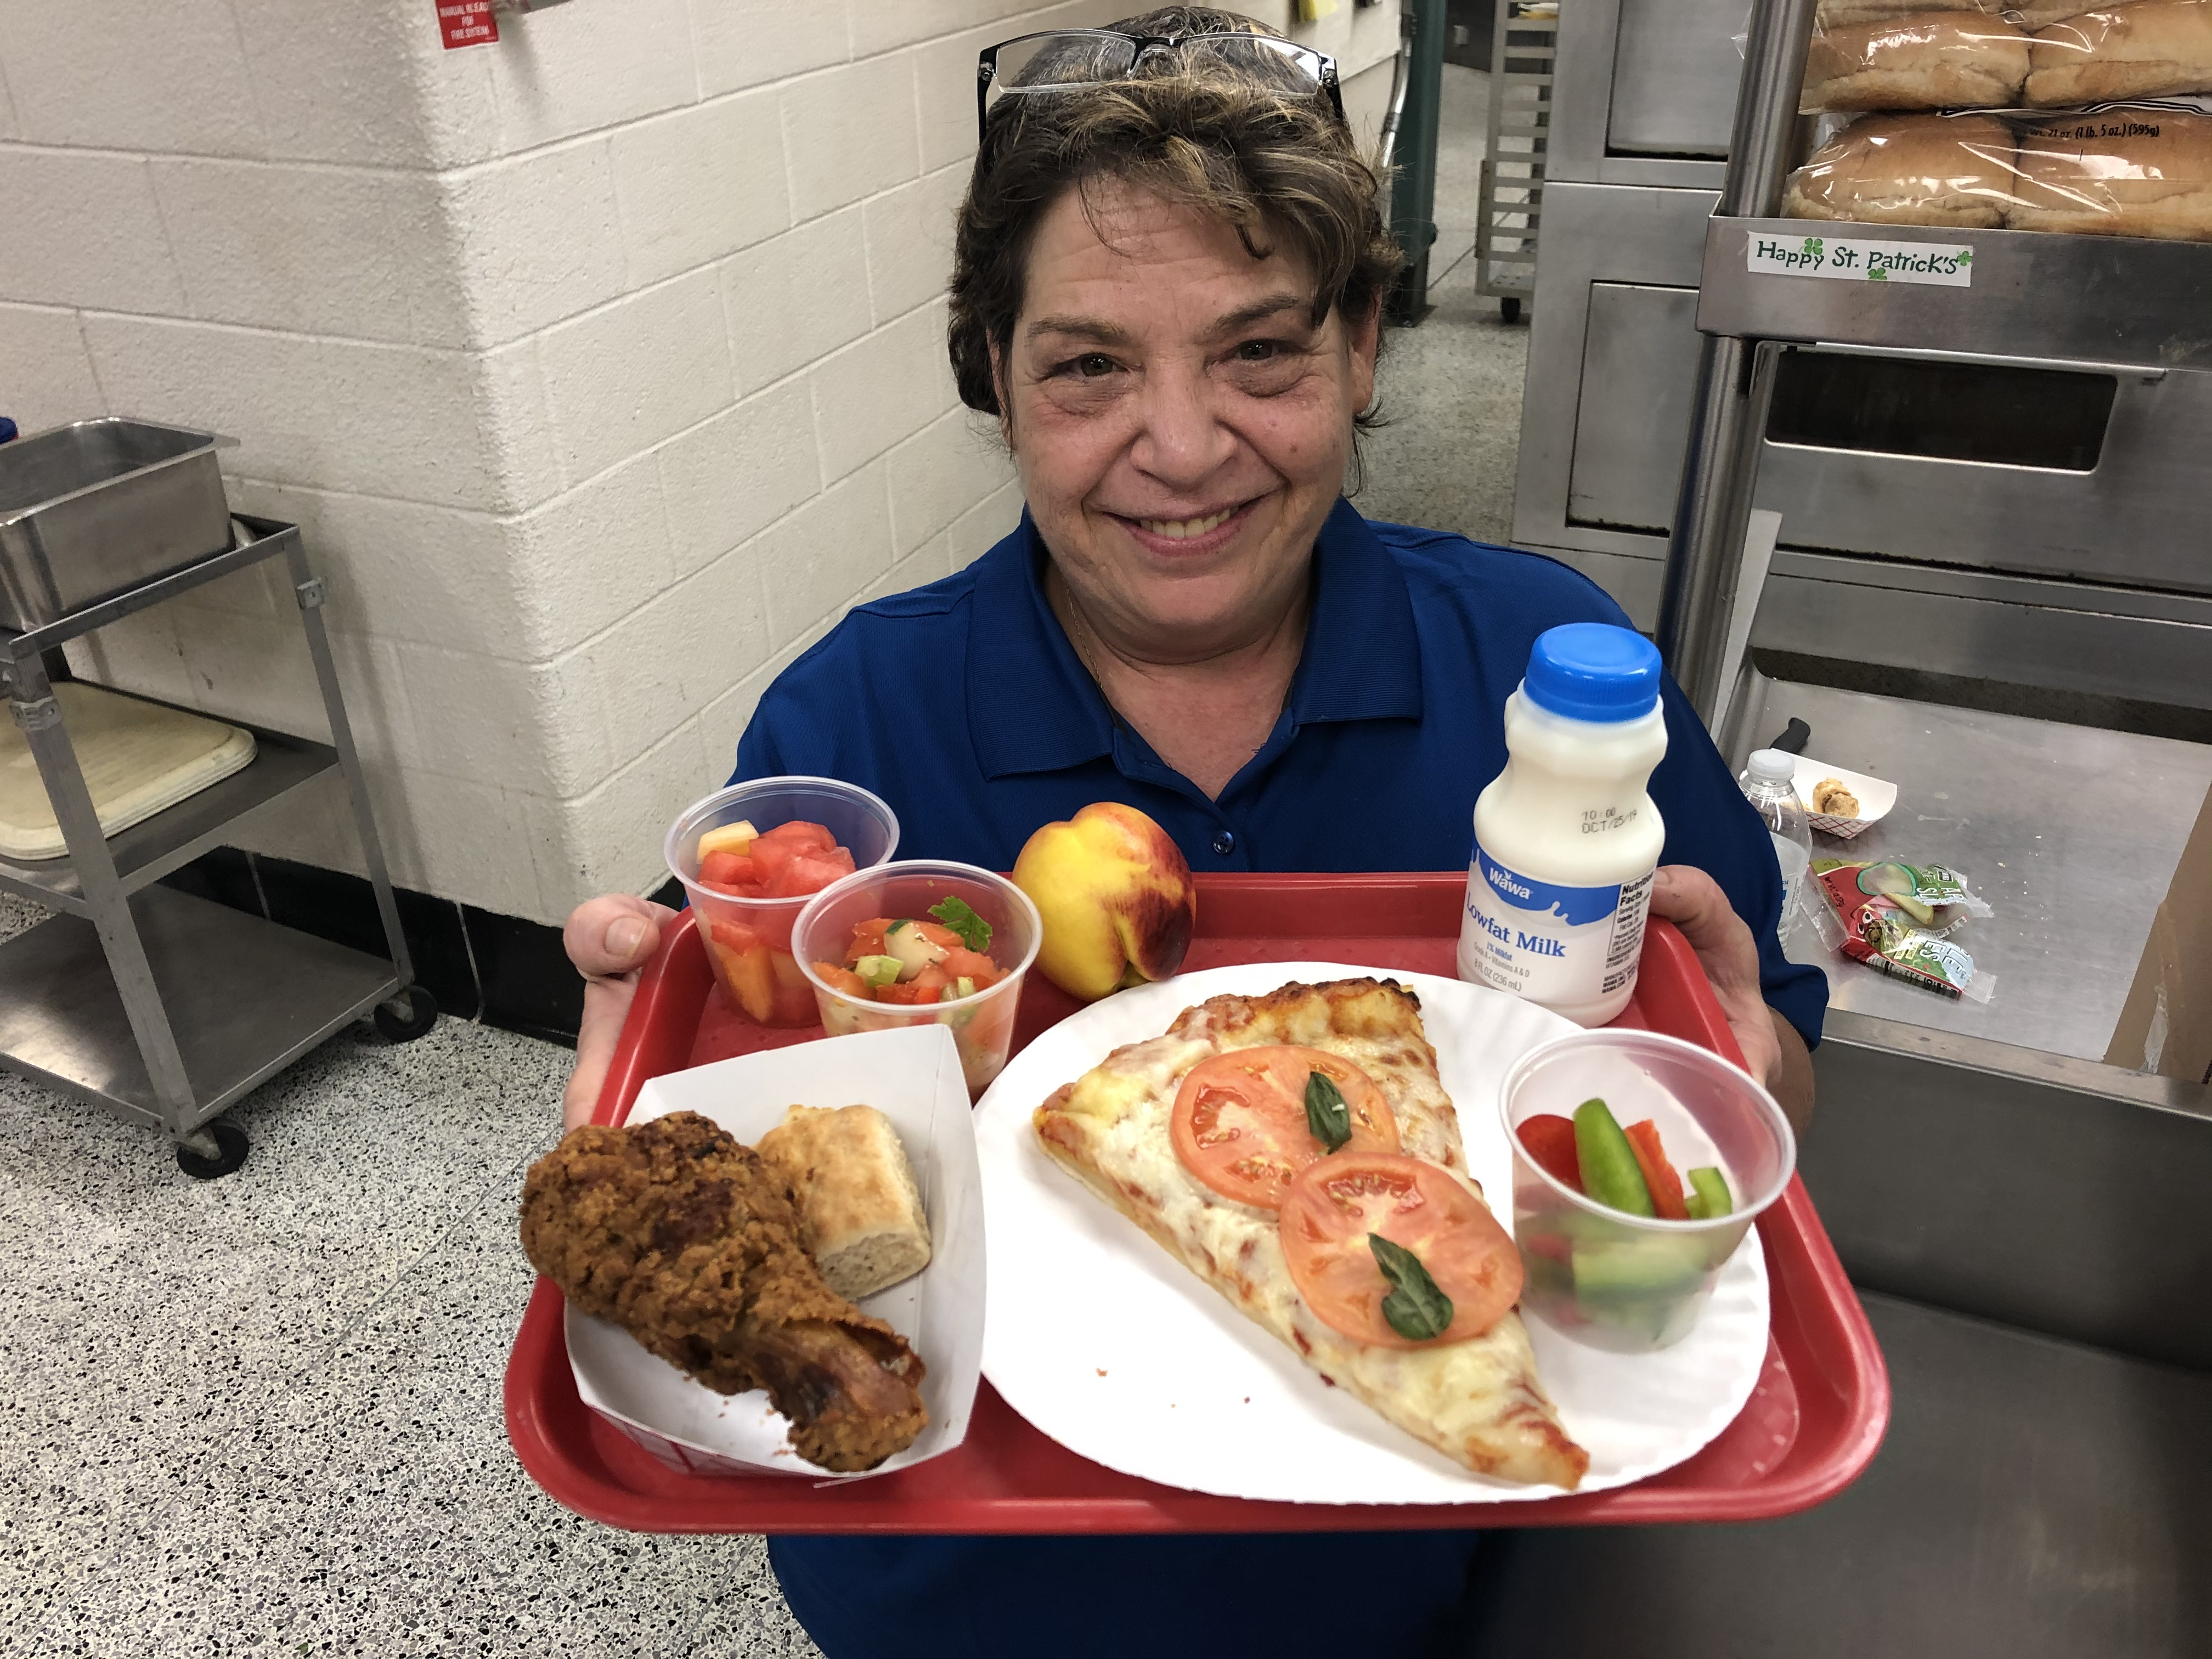 woman holding tray of food